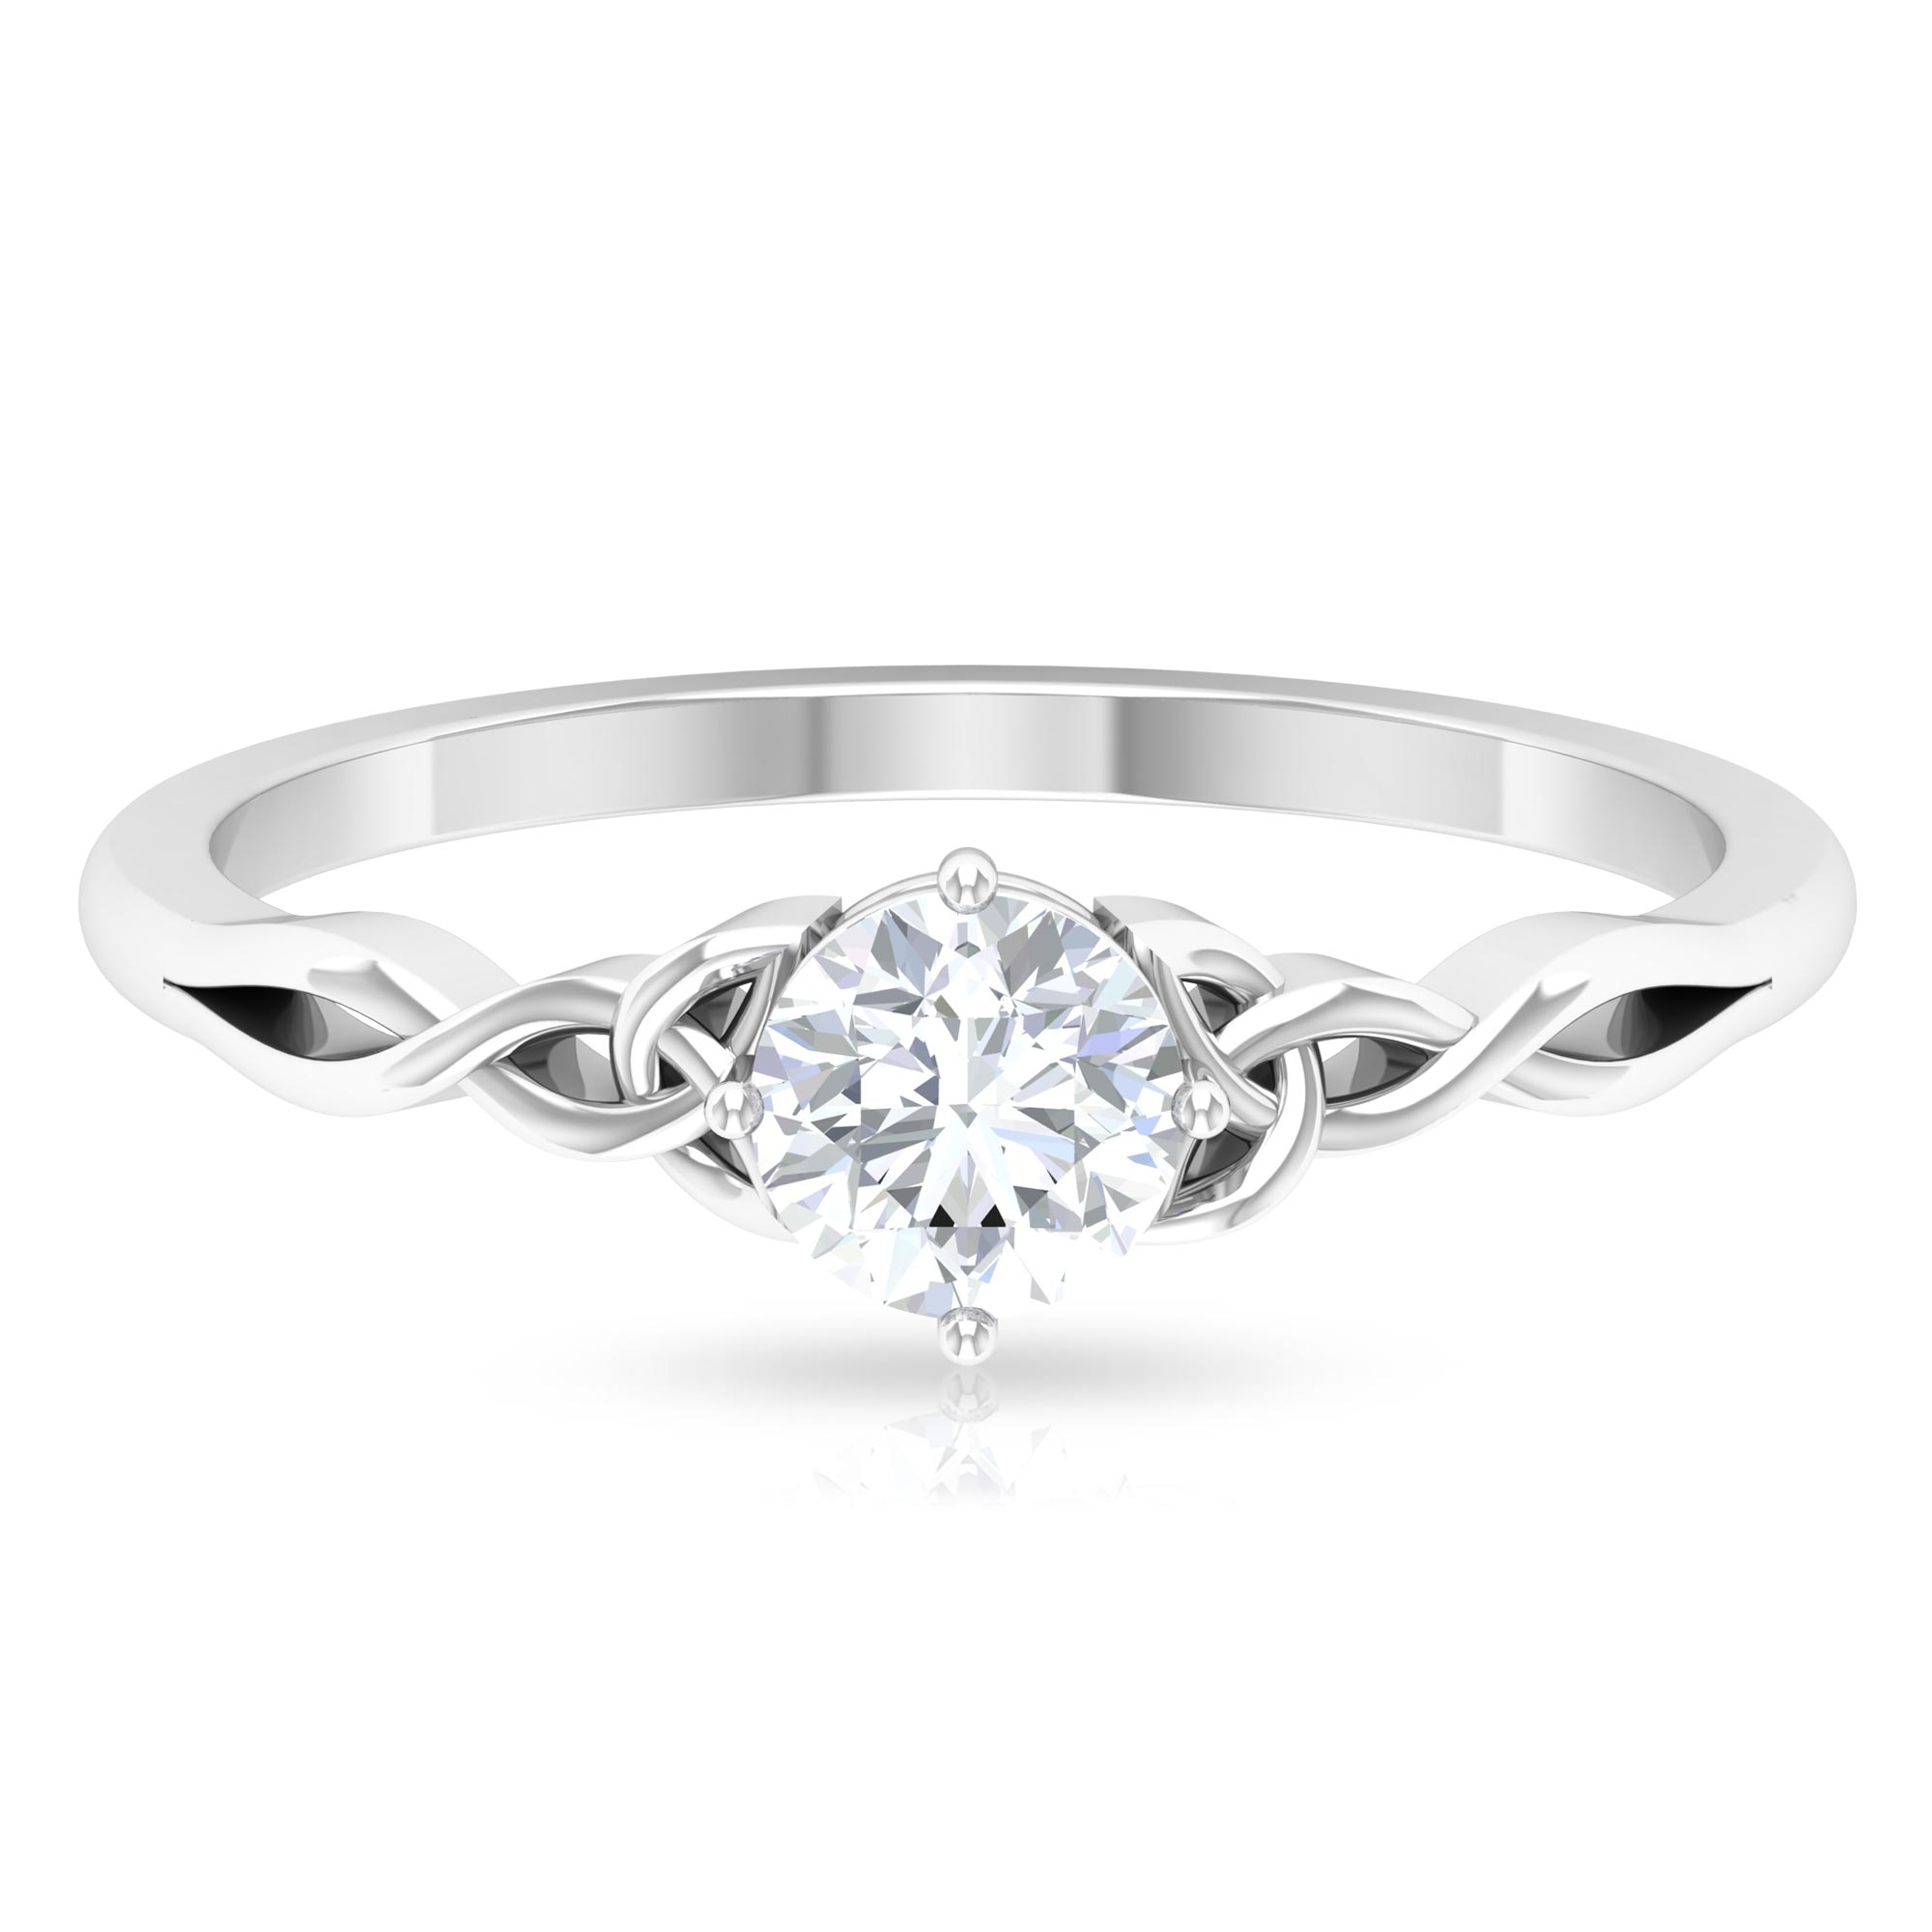 5 MM Round Cut Diamond Solitaire Celtic Ring in Diagonal 4 Prong Setting